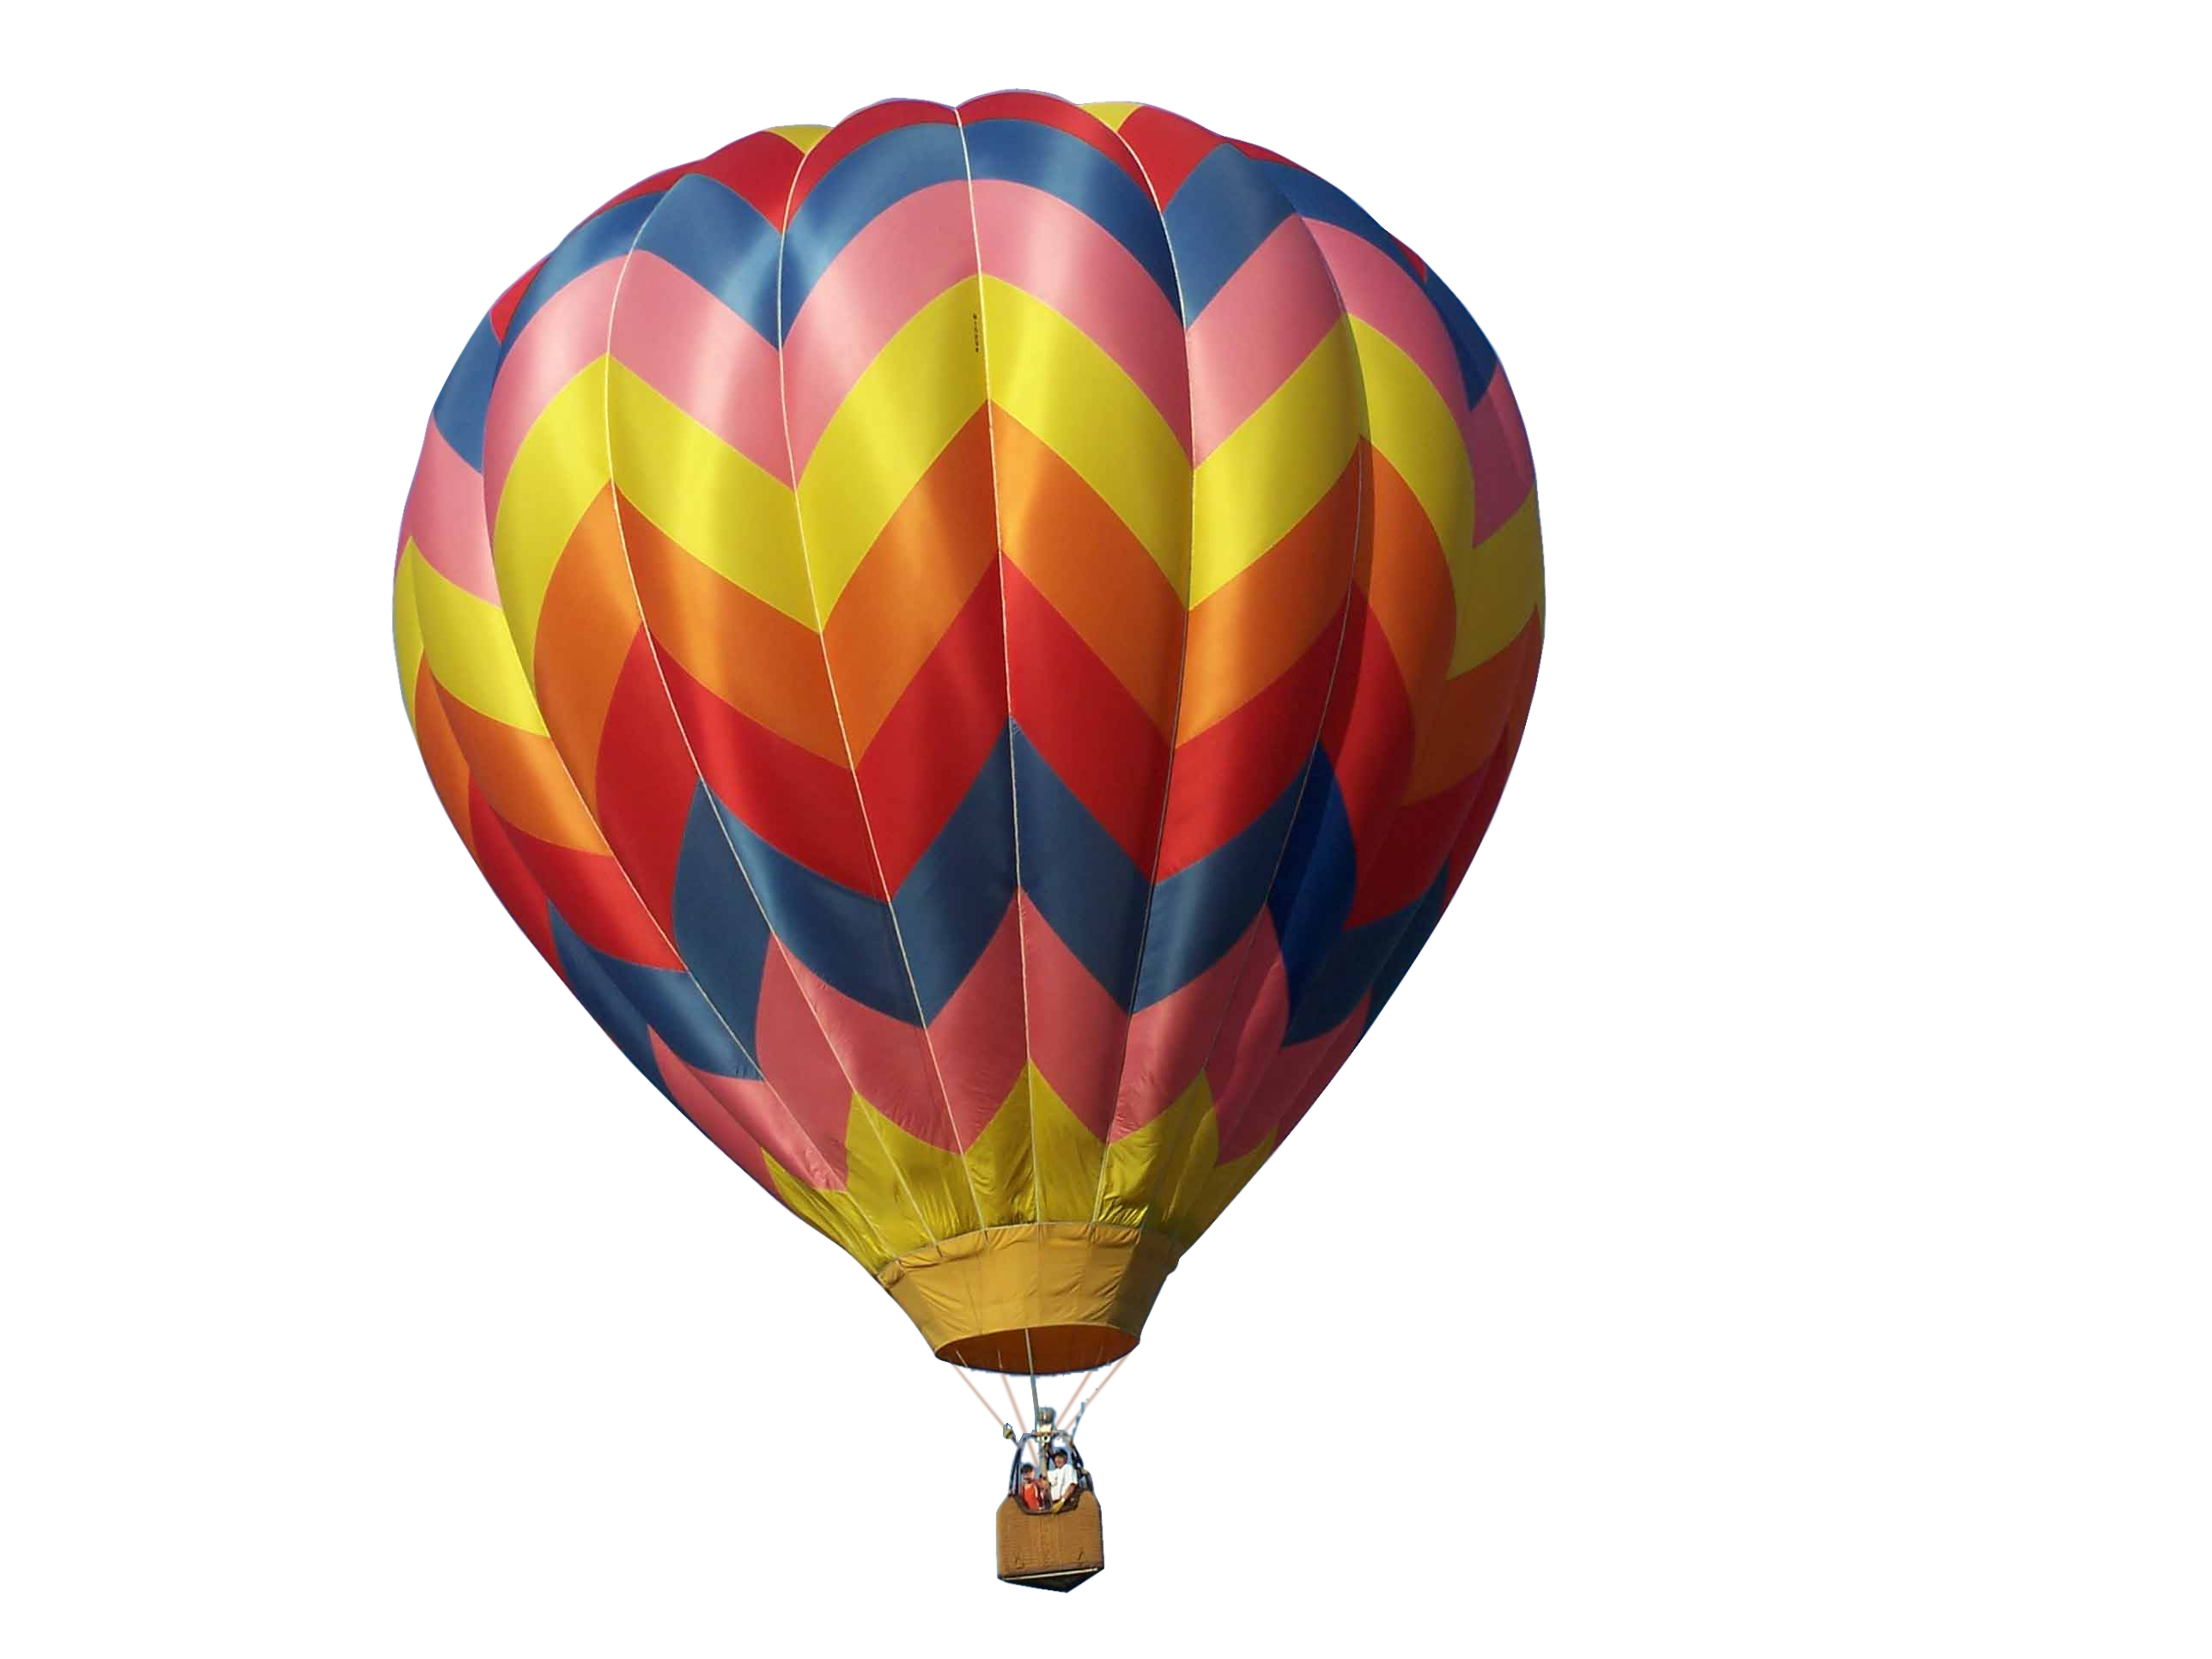 Balloon, Balloons - Gas Balloon PNG